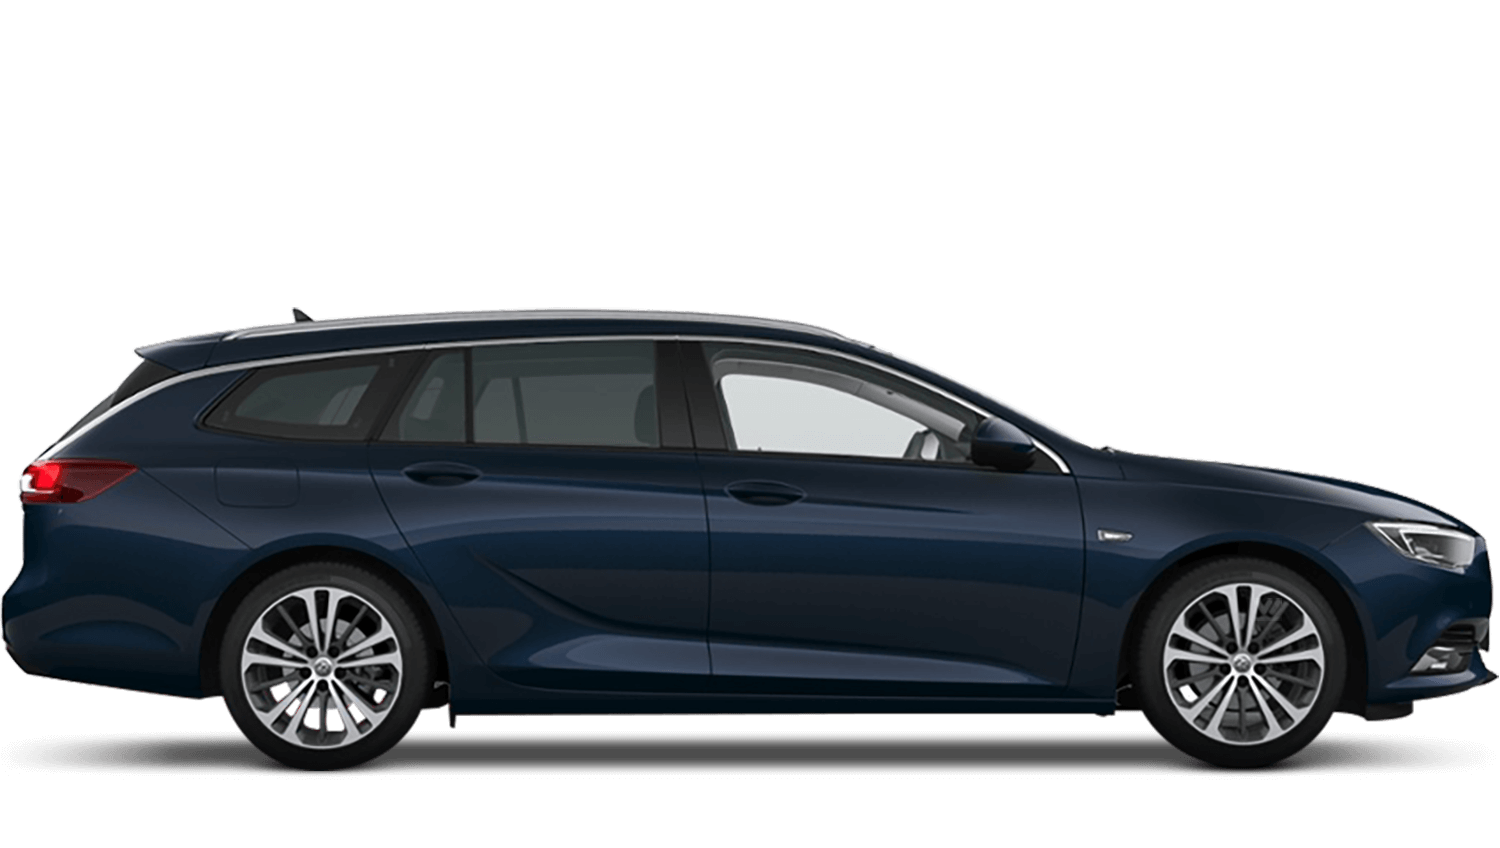 Darkmoon Blue (Premium) Vauxhall Insignia Sports Tourer